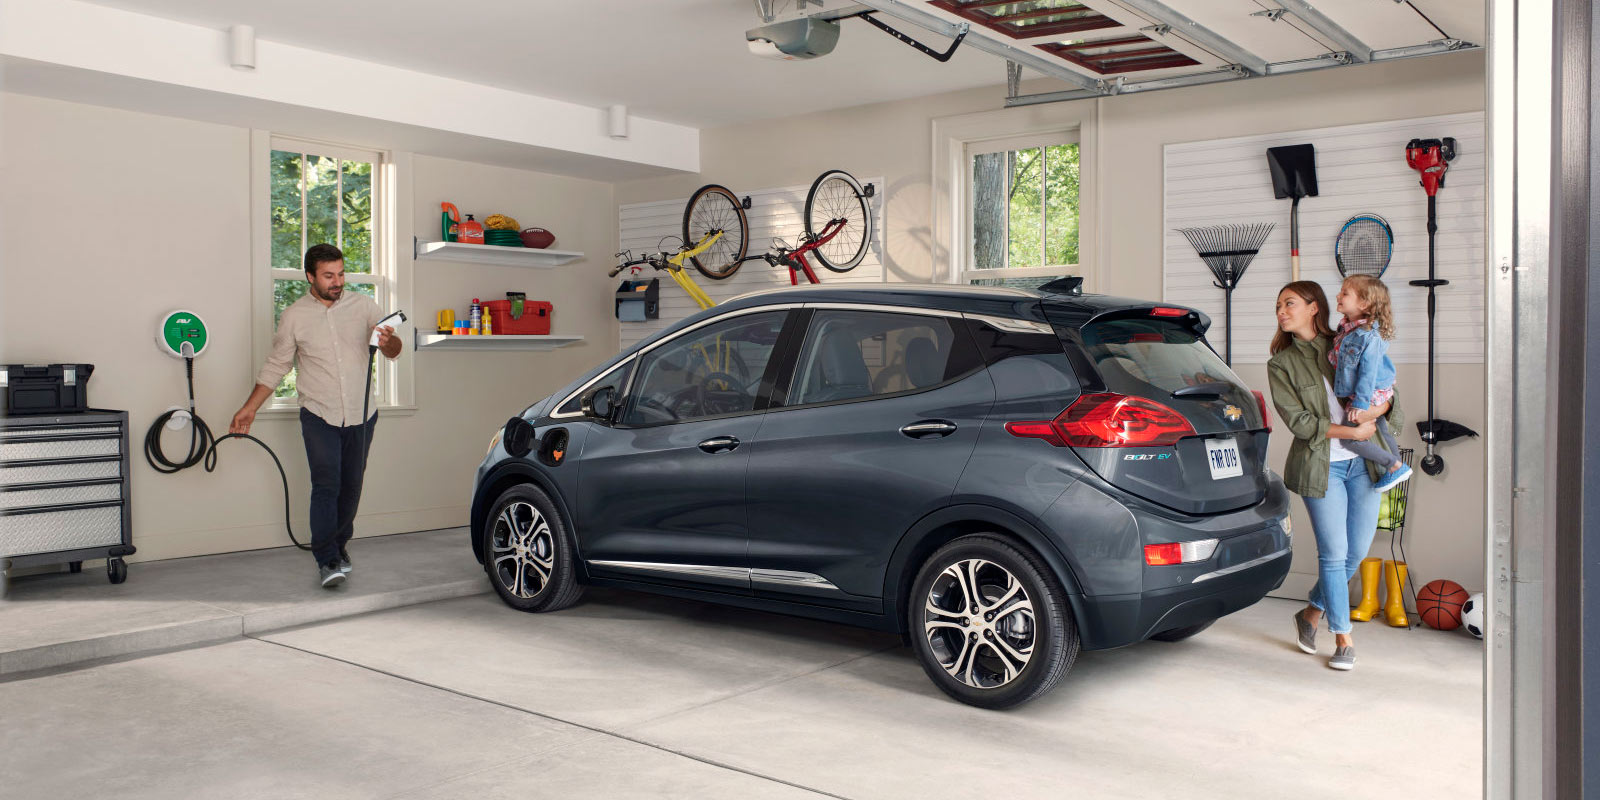 How much does EV charging save you compared to gas? Up to $10,500 says DOE  - Electrek